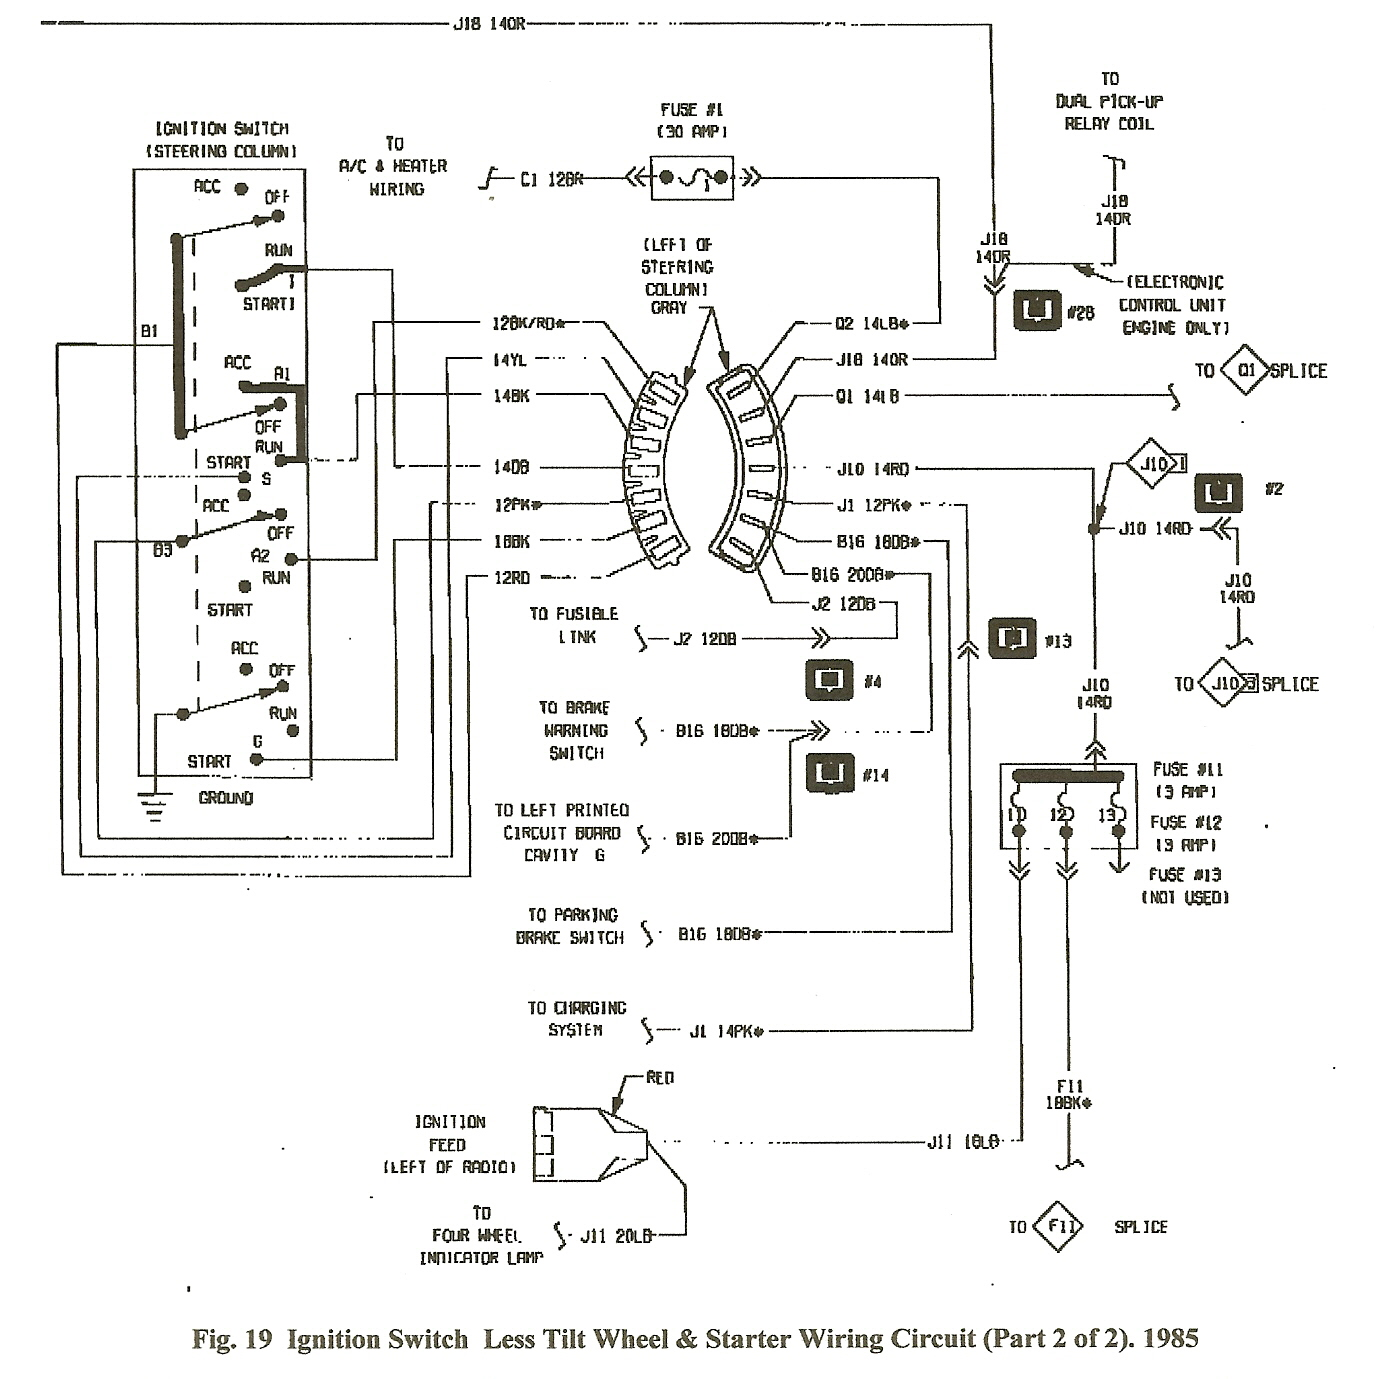 b16 wiring harness diagram 1996 ford wiring harness diagrams dodge ram 2500 wiring harness at soozxer.org